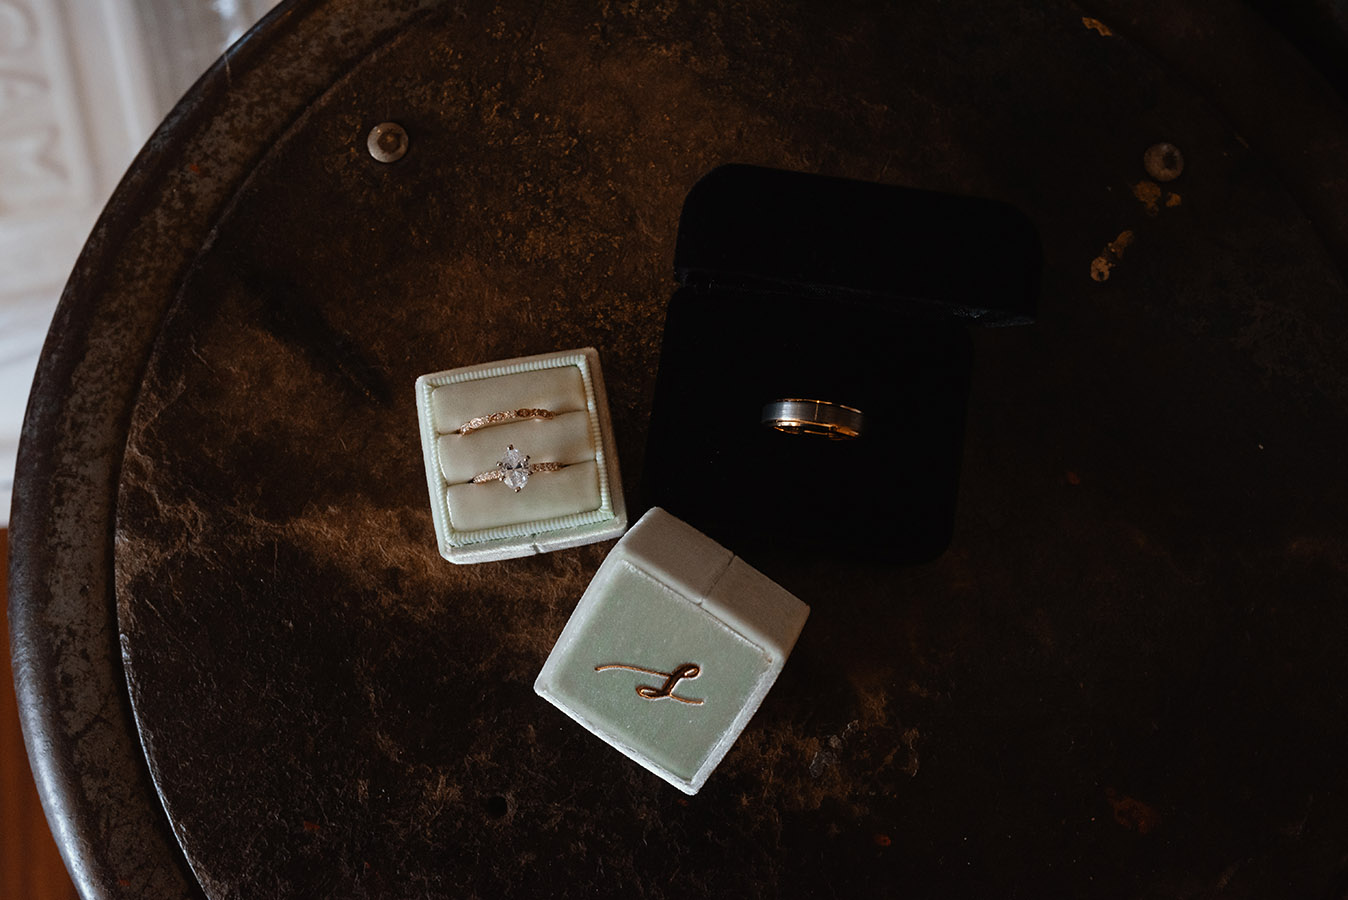 Jeanne and Dan's rings by Shane Co.